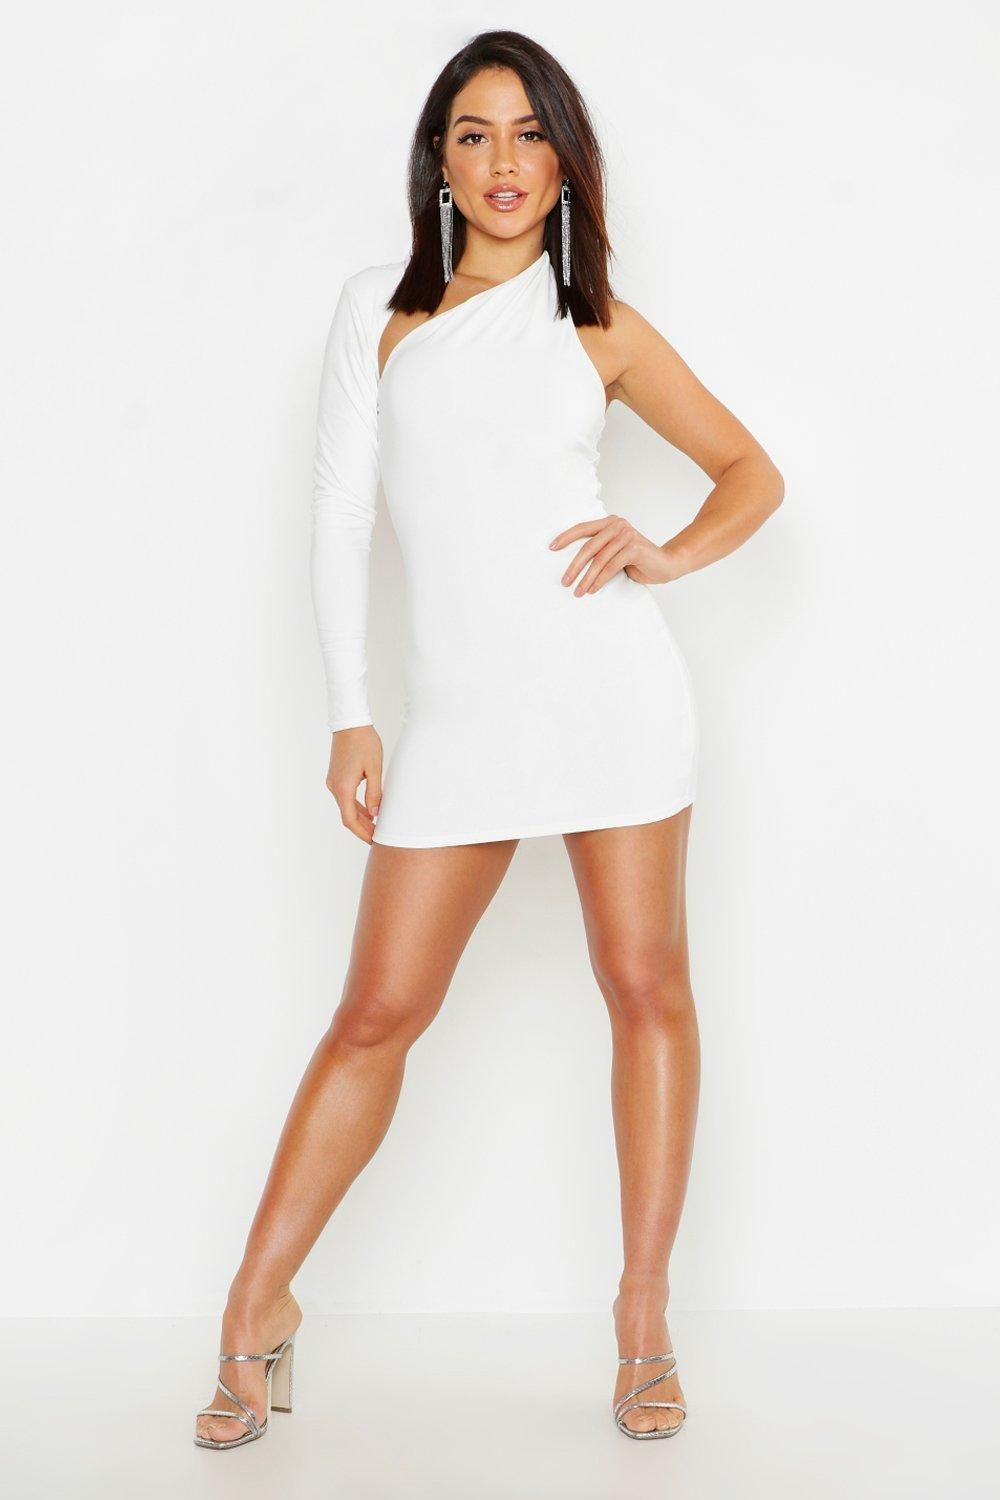 e23d65a899 Love Island fashion: what are the contestants wearing tonight?